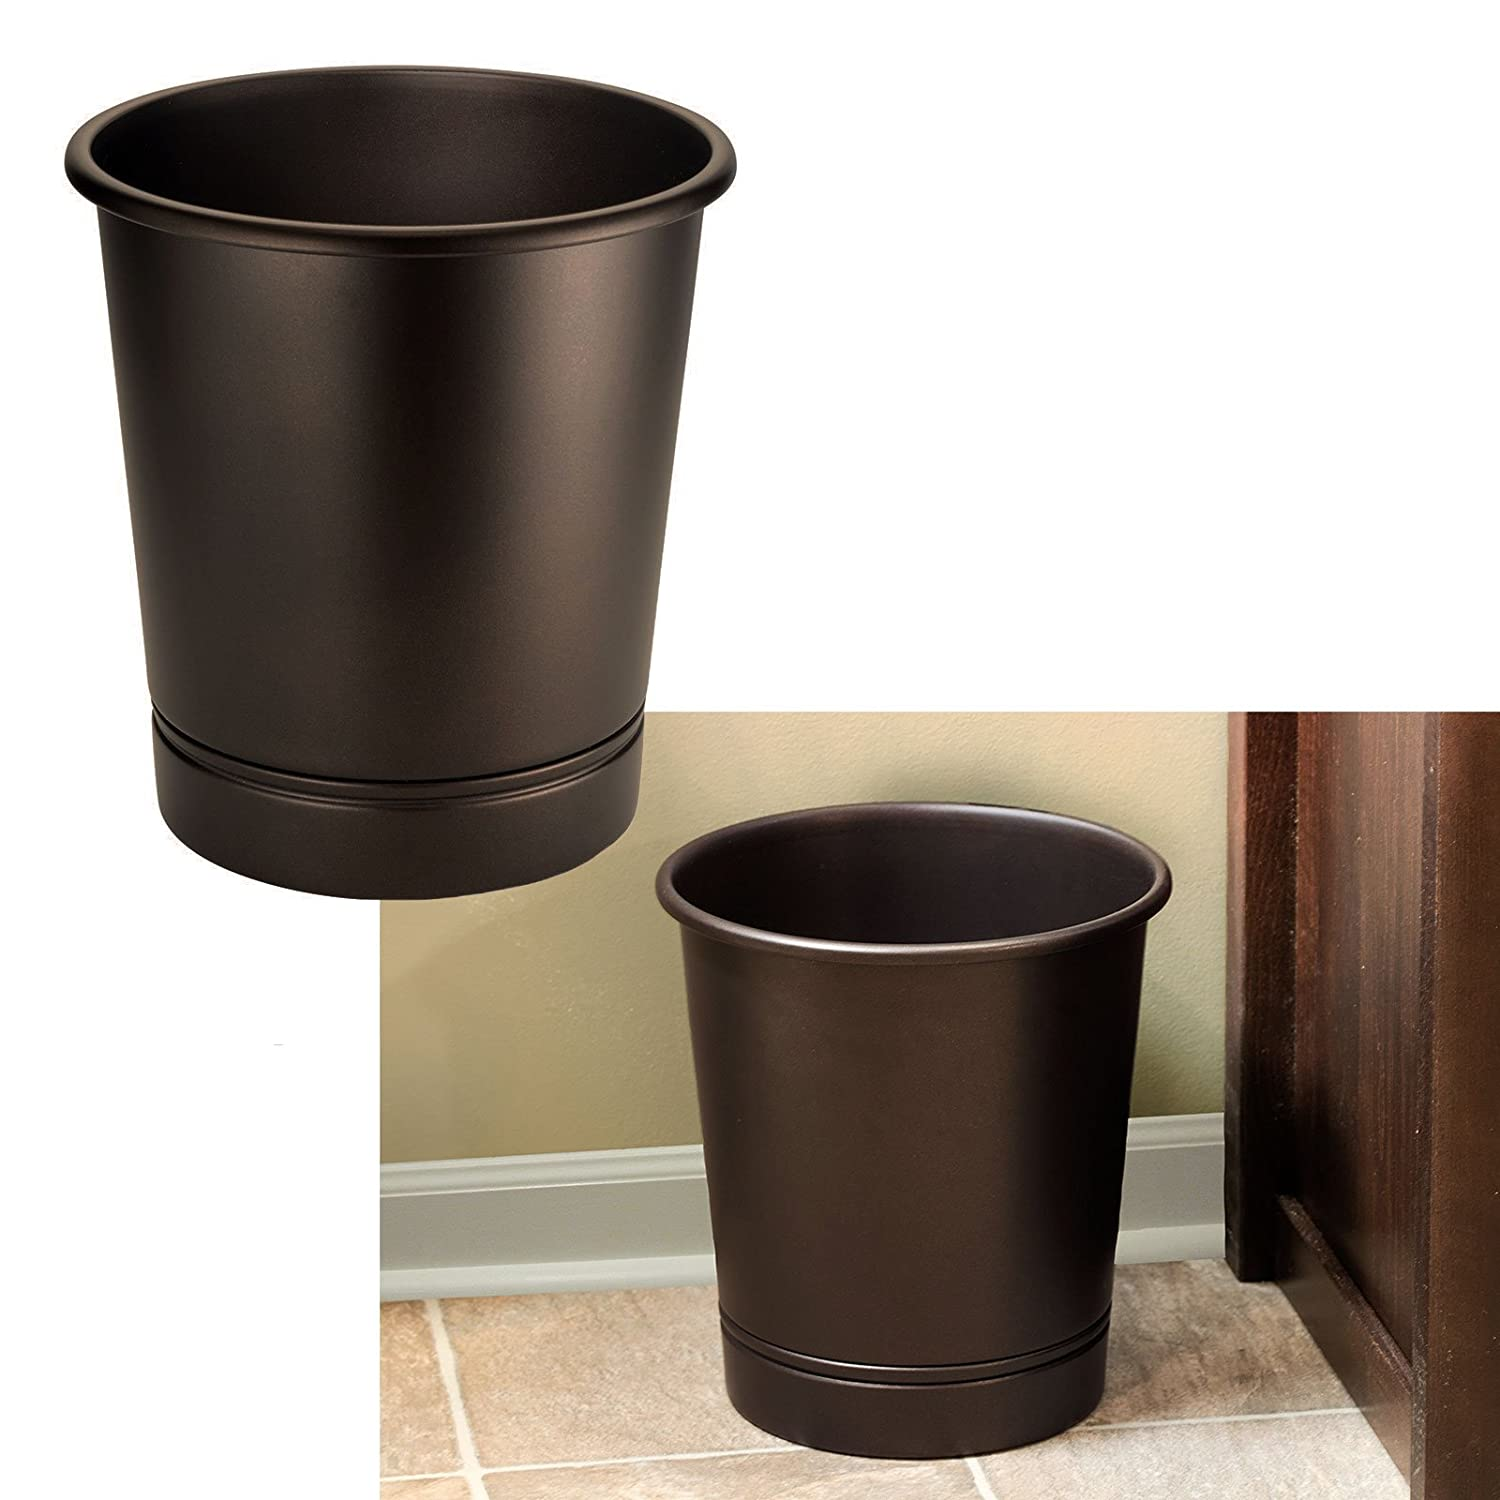 Amazon com  New York Bathroom Waste Basket Trash Can Bath Sink Accessories   Oil Rubbed Bronze  Home   KitchenAmazon com  New York Bathroom Waste Basket Trash Can Bath Sink  . Roll Top Bath Waste Problems. Home Design Ideas